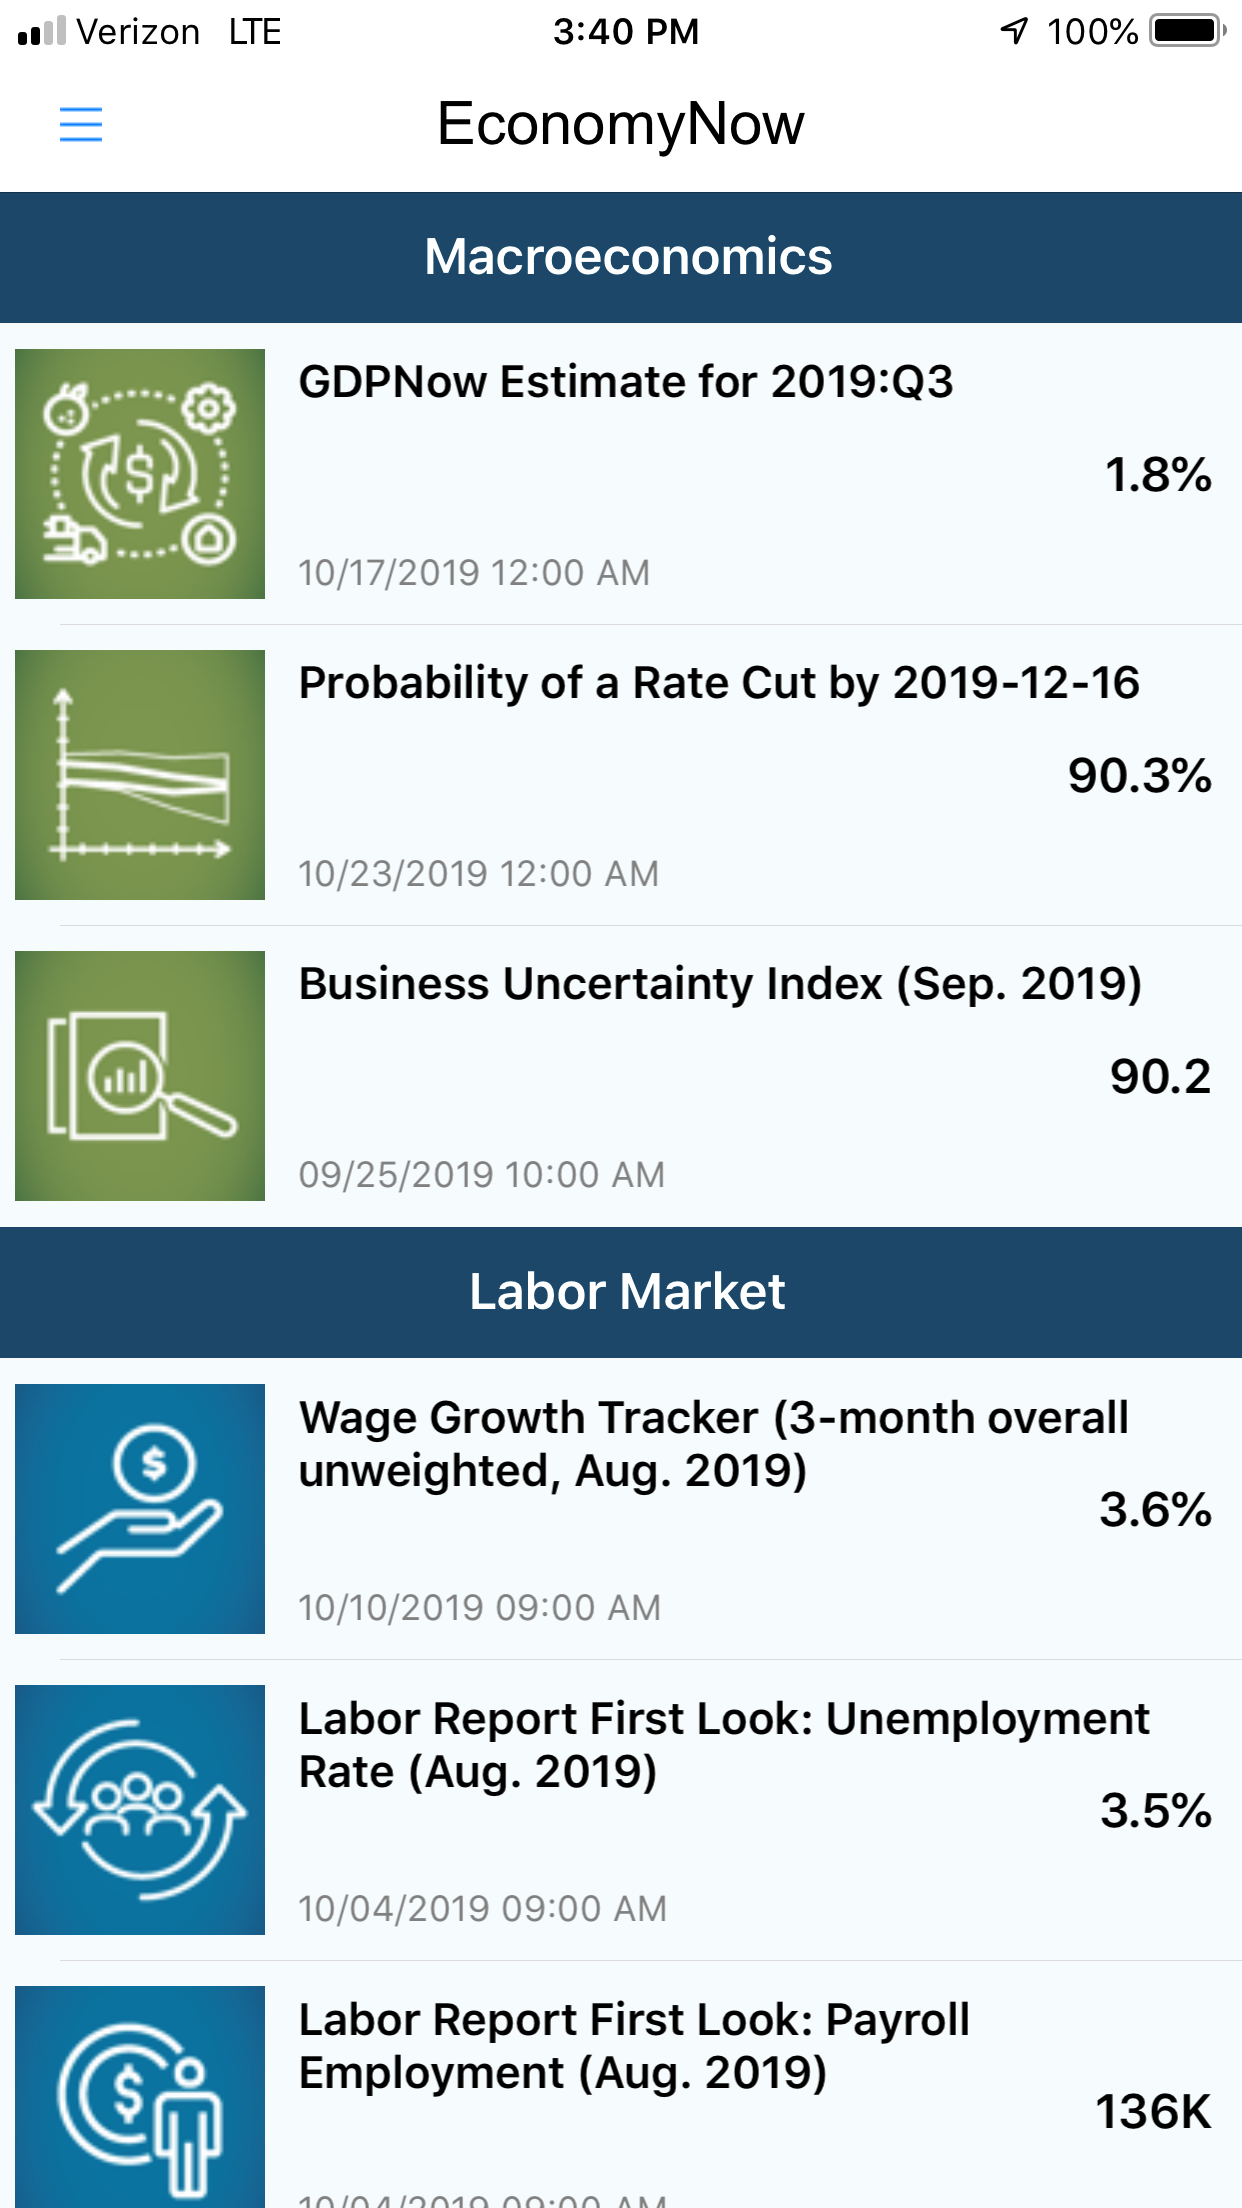 screenshot of the EconomyNow app showing the list of tools